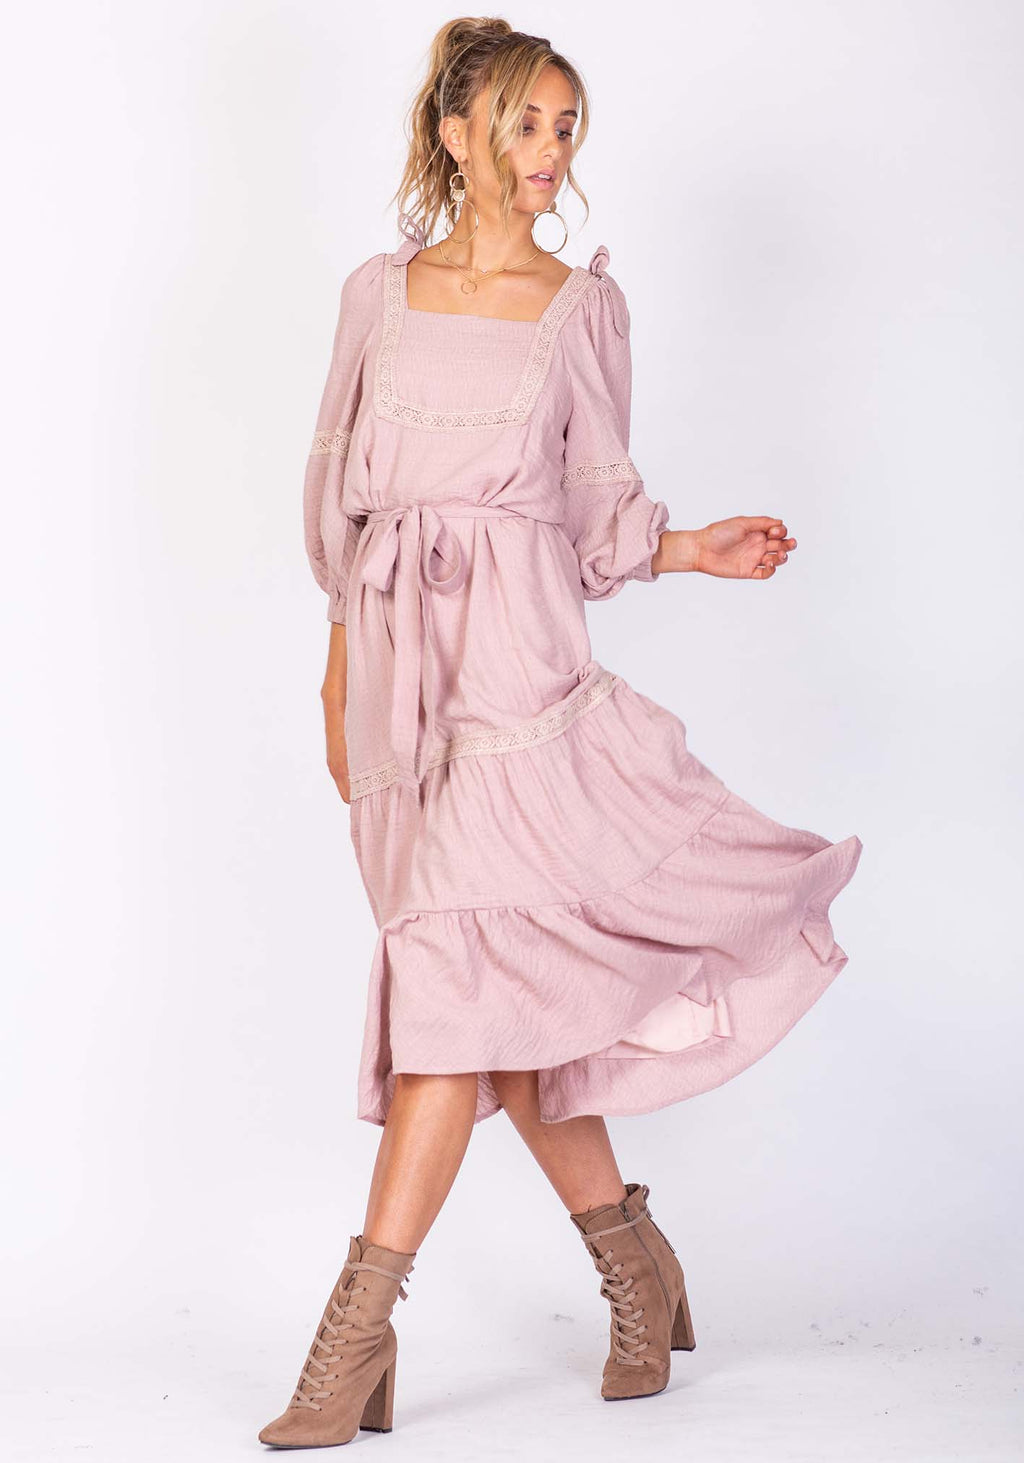 Sunset Pink Midi Dress By Three of Something Sydney Australia